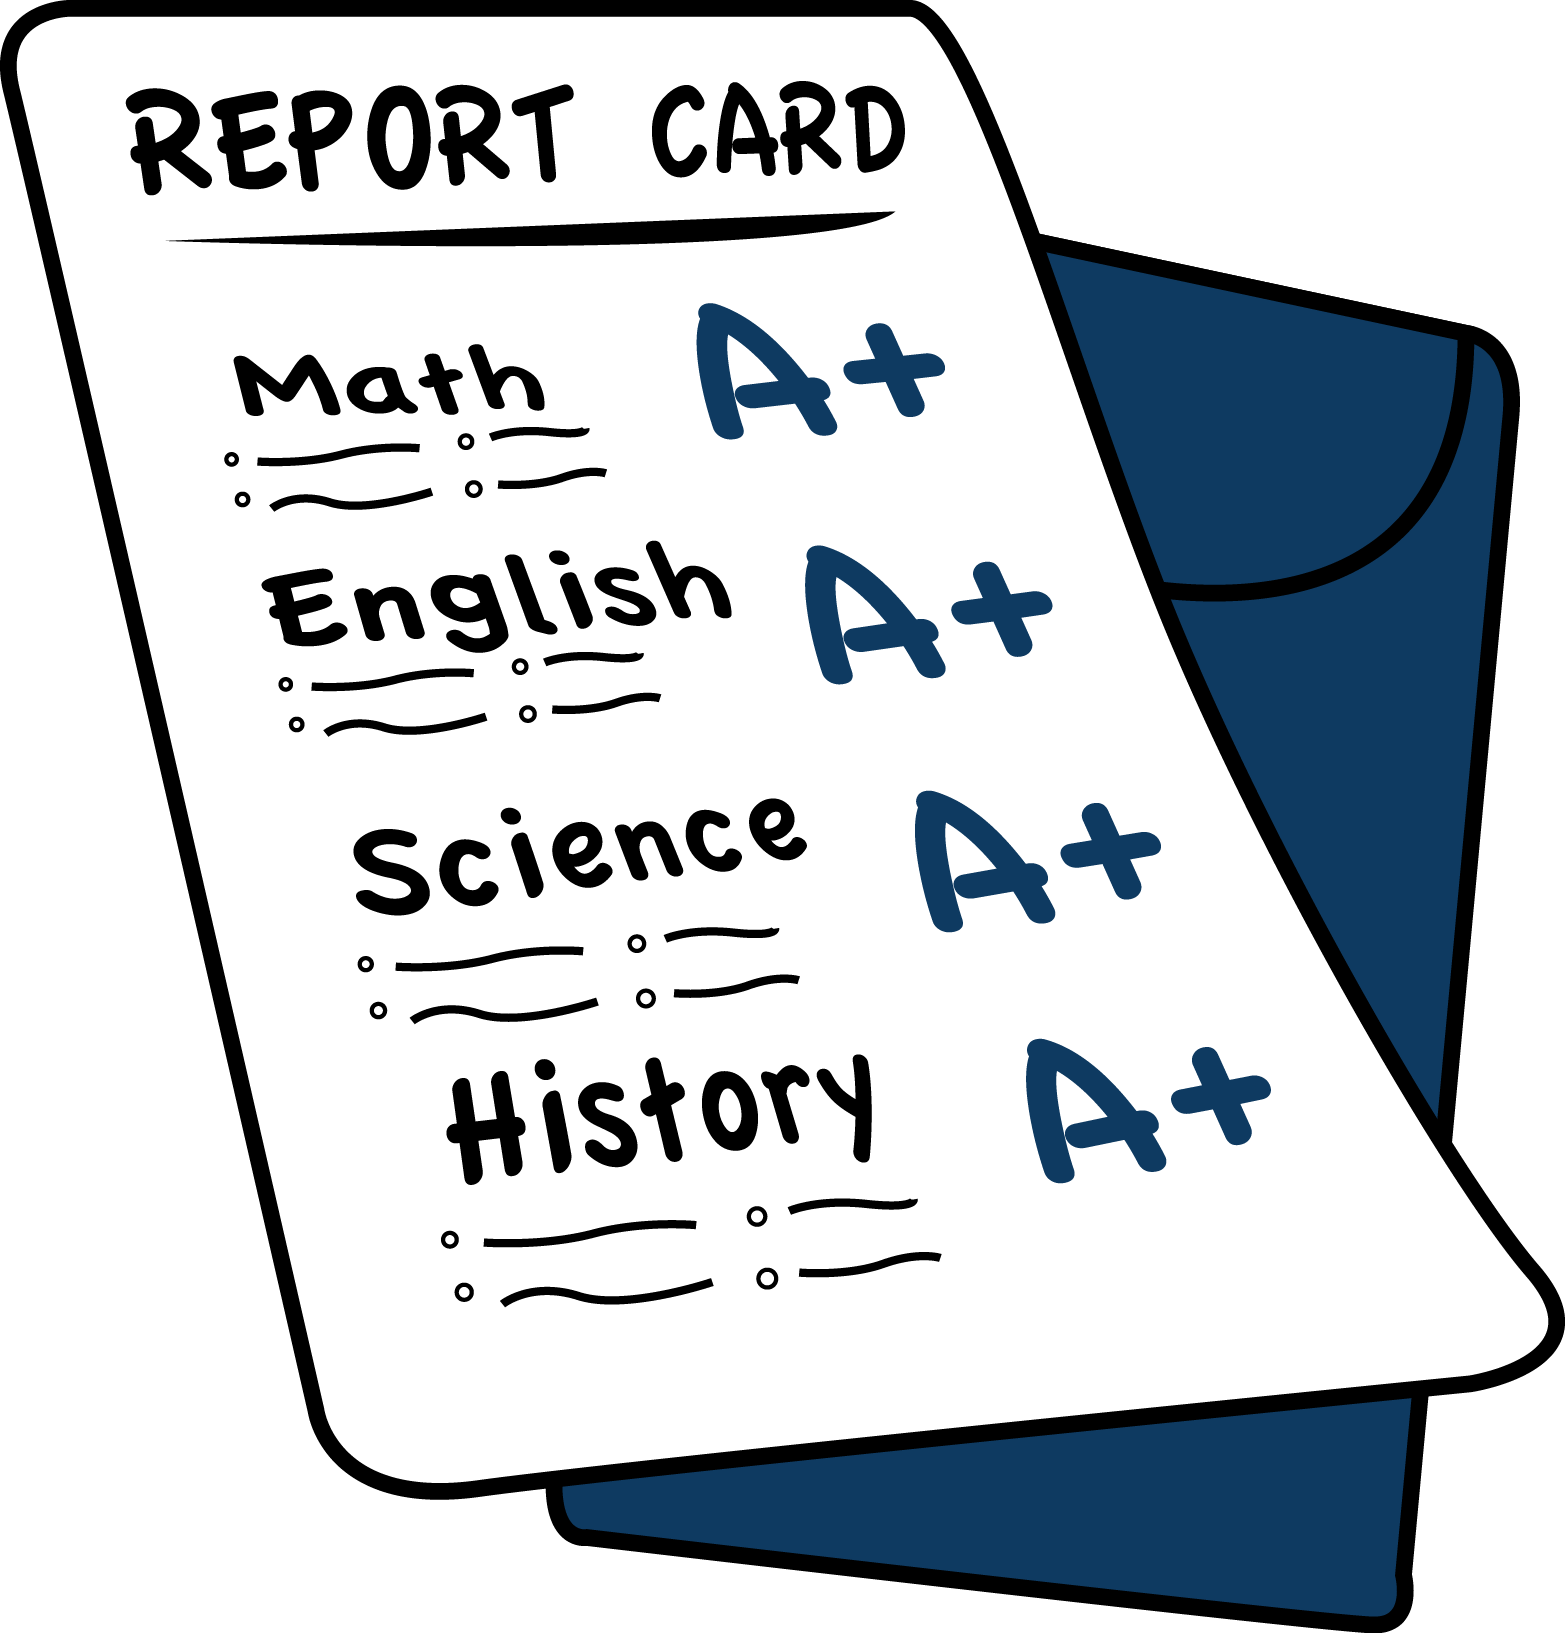 A Report Card PNG